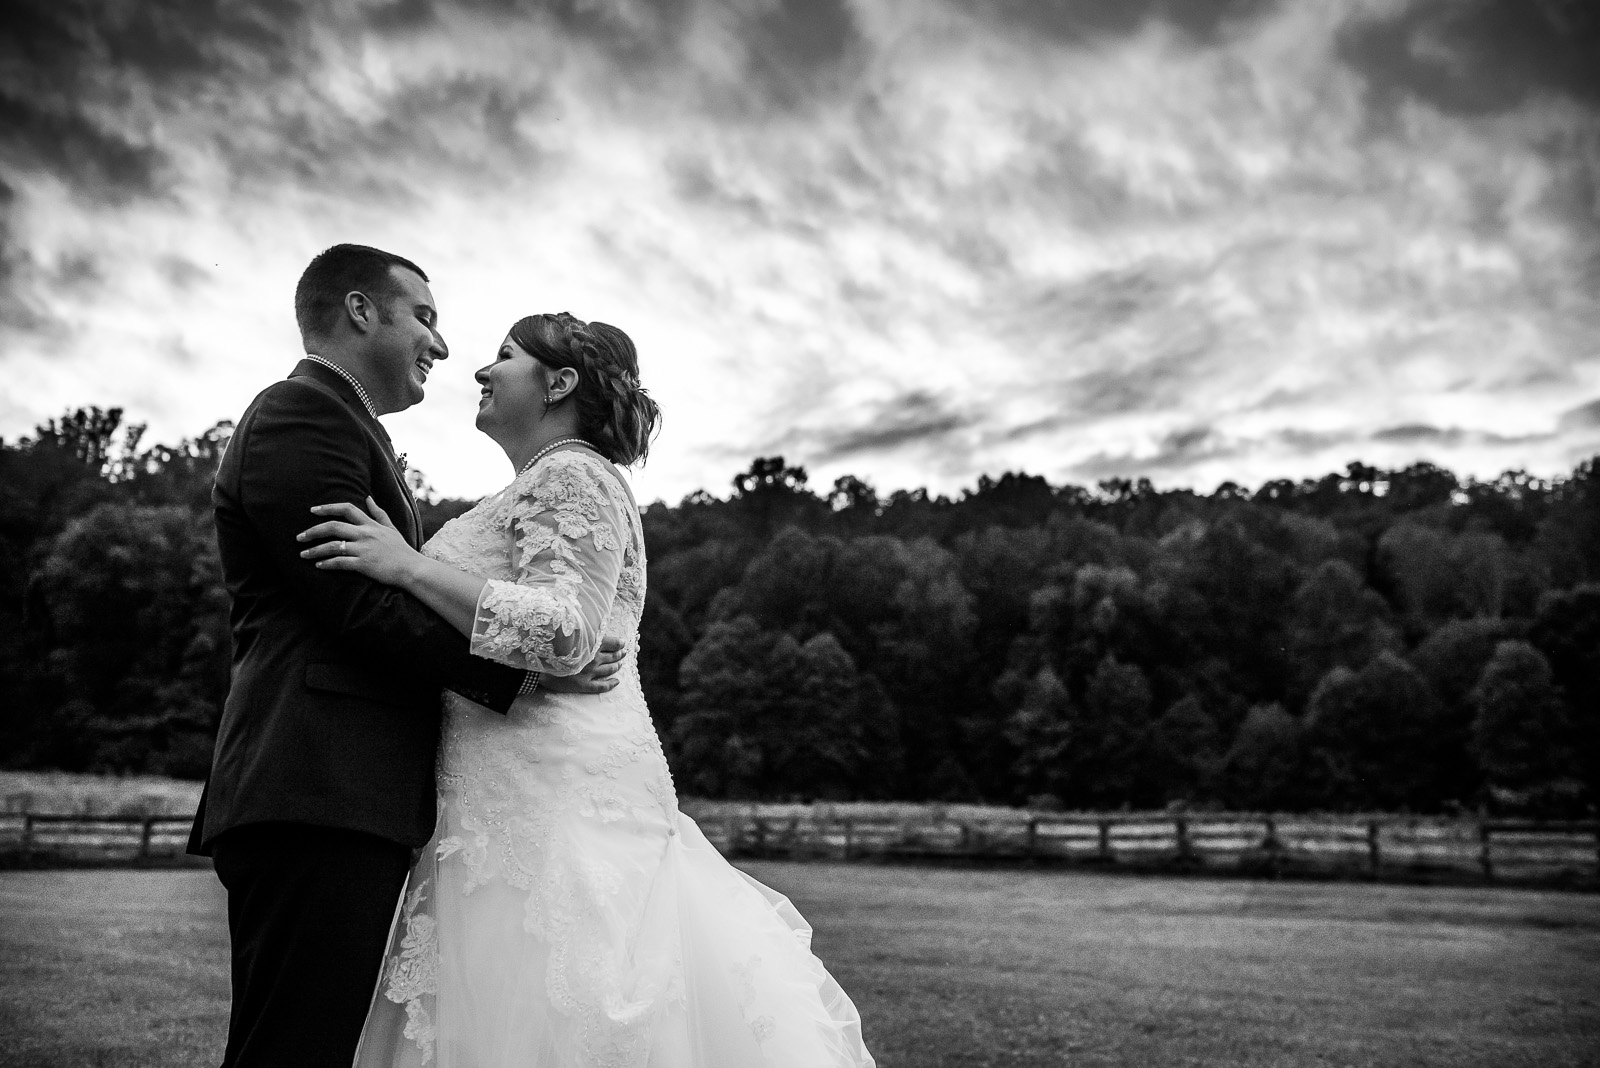 Eric_and_Christy_Photography_Blog_Wedding_Stacey_Geoff-63